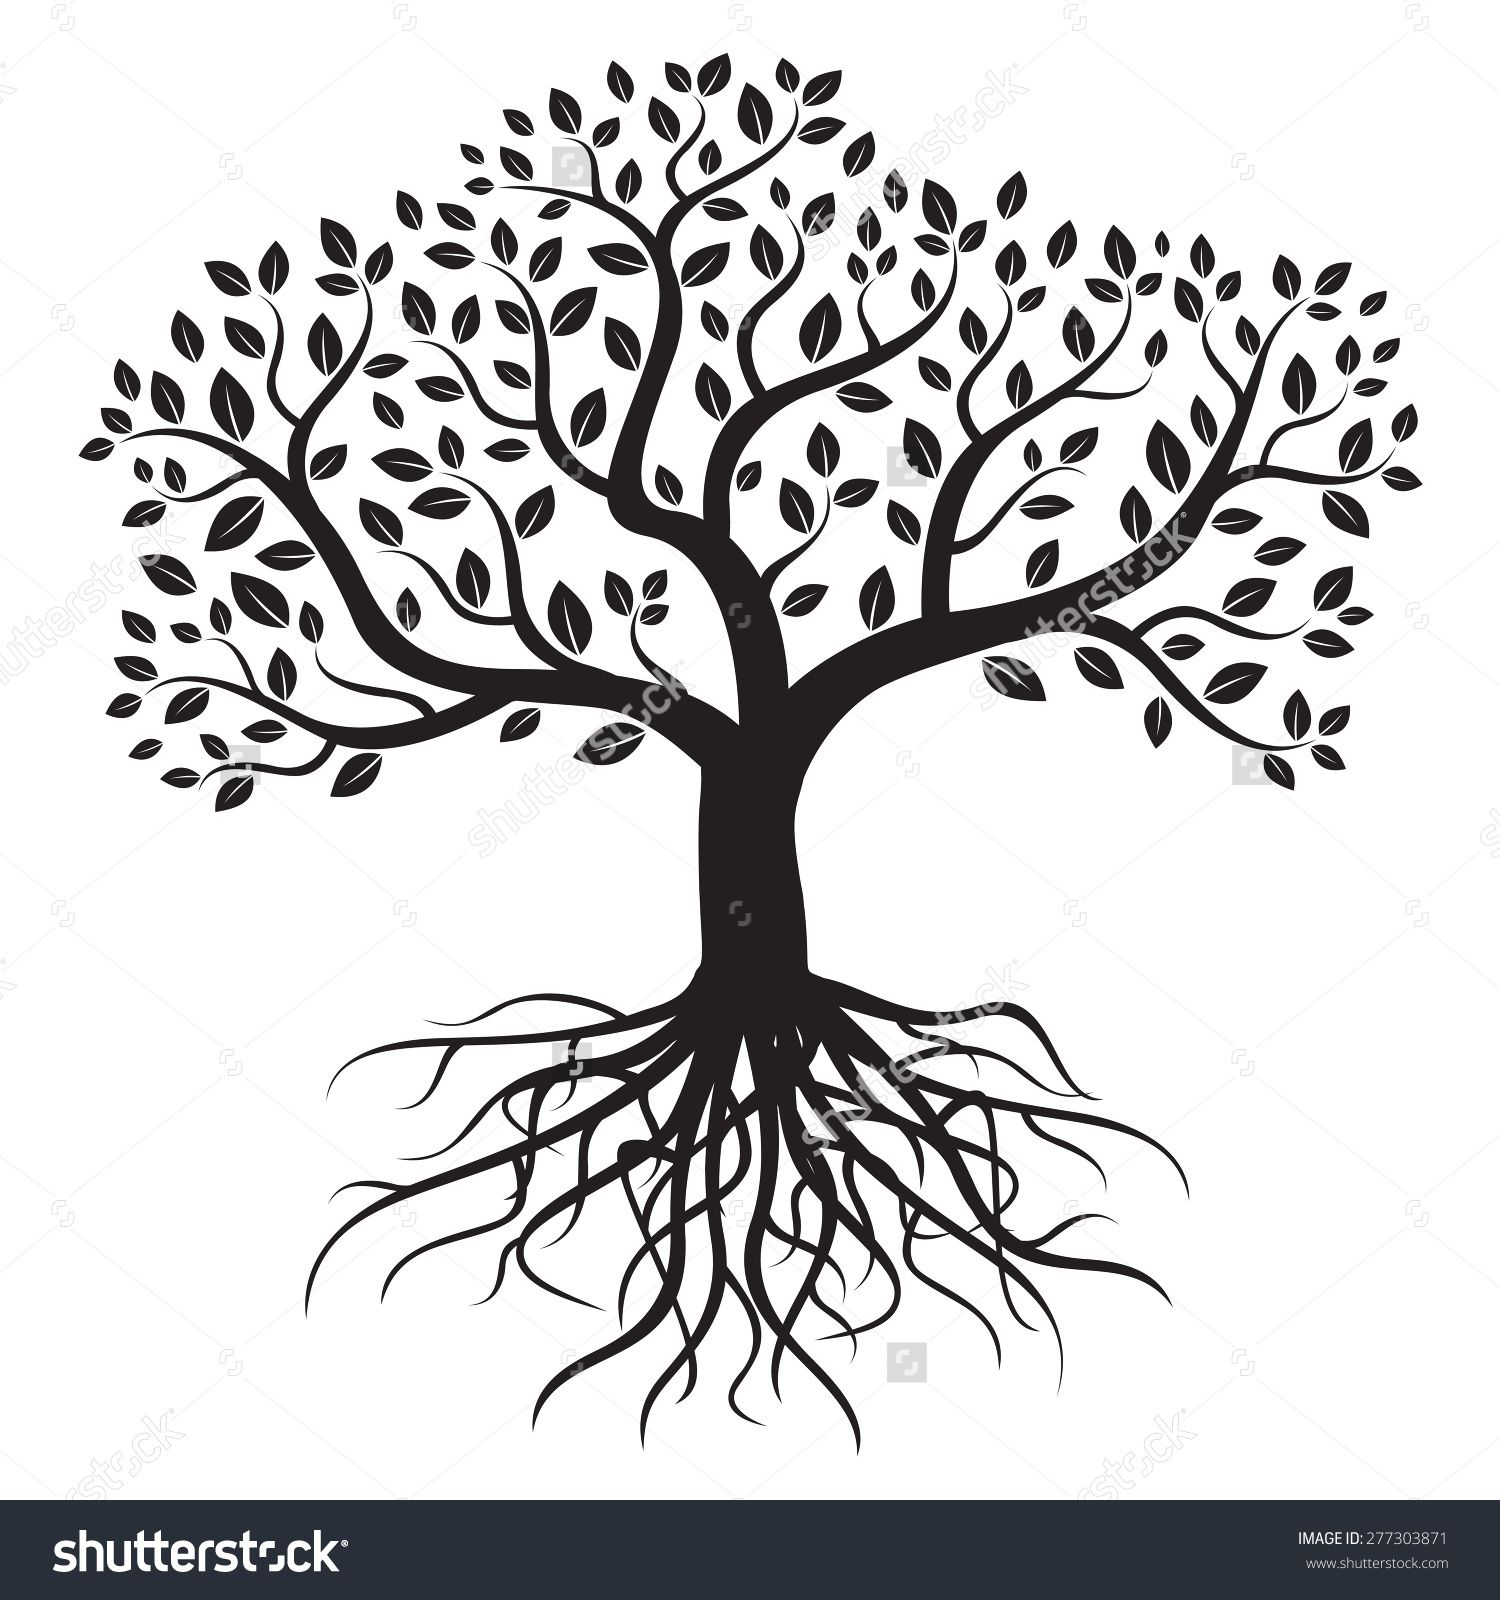 Black vector tree with roots and leafs. Dessin arbre de